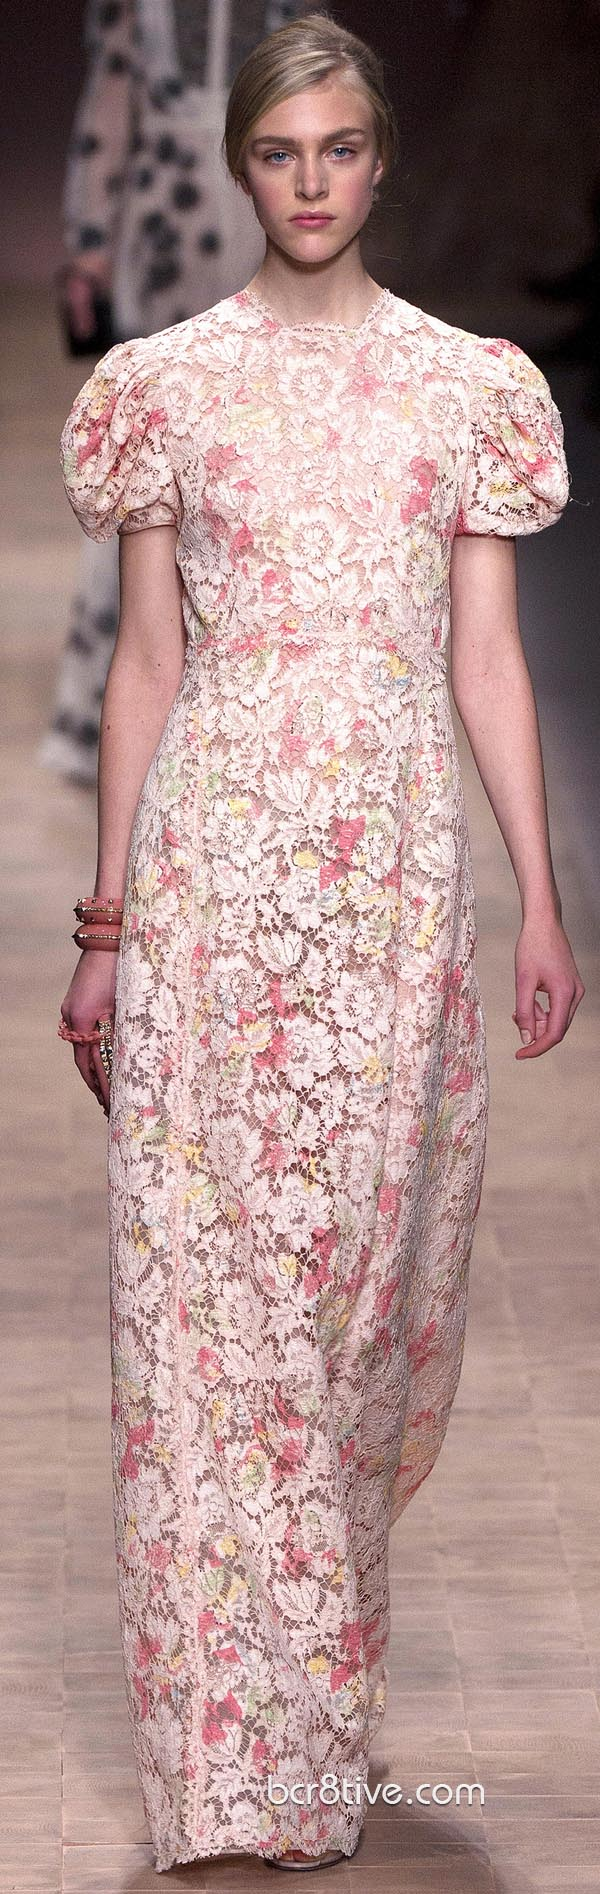 Valentino Spring Summer 2013 Ready To Wear Collection - Evening Gown